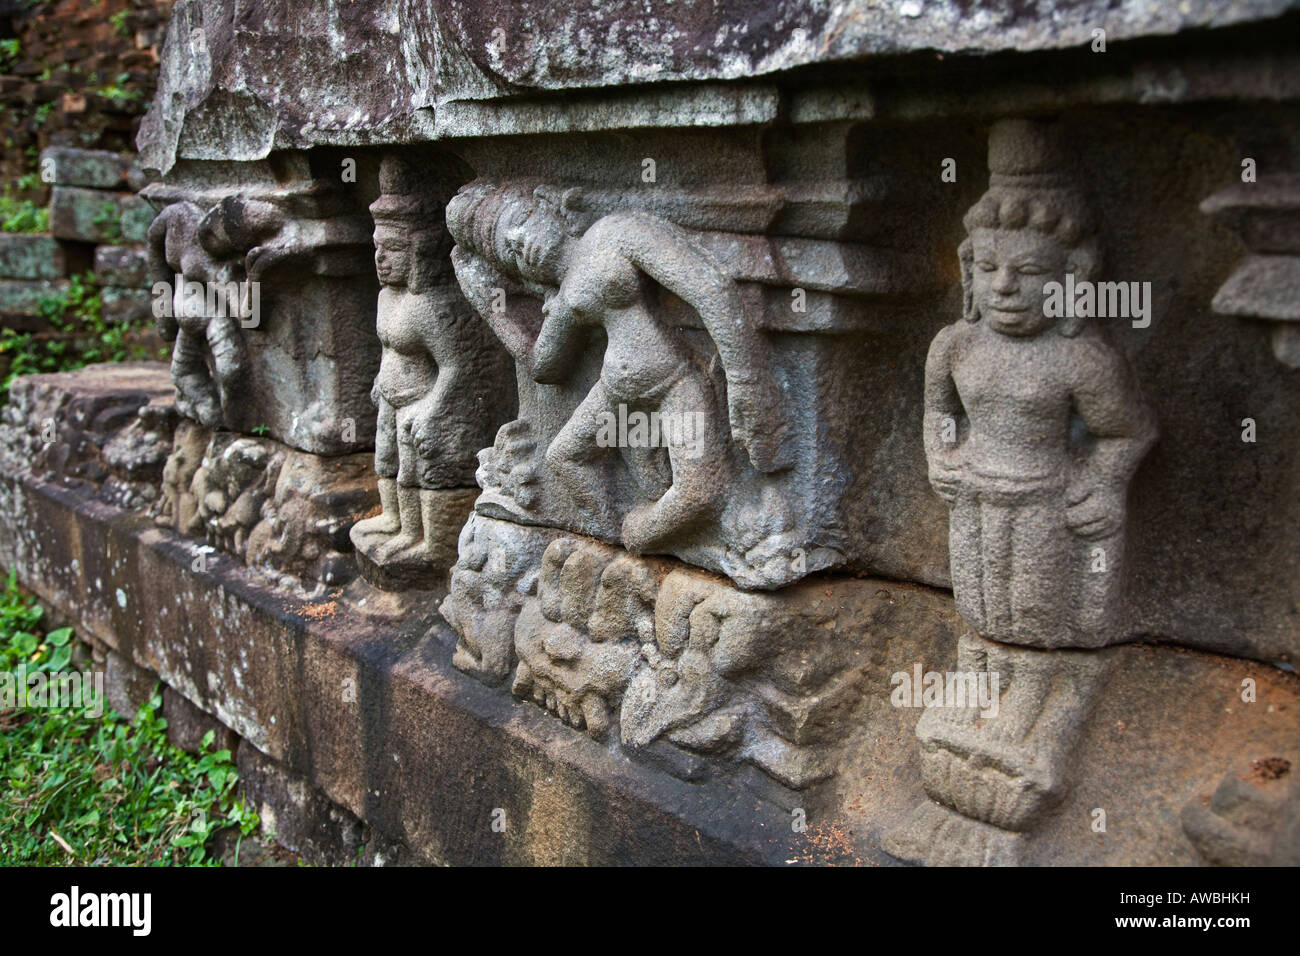 Ancient CHAM STONE CARVINGS decorate the foundations of the TEMPLES at the CHIEN DANG RUINS TAM KY VIETNAM - Stock Image